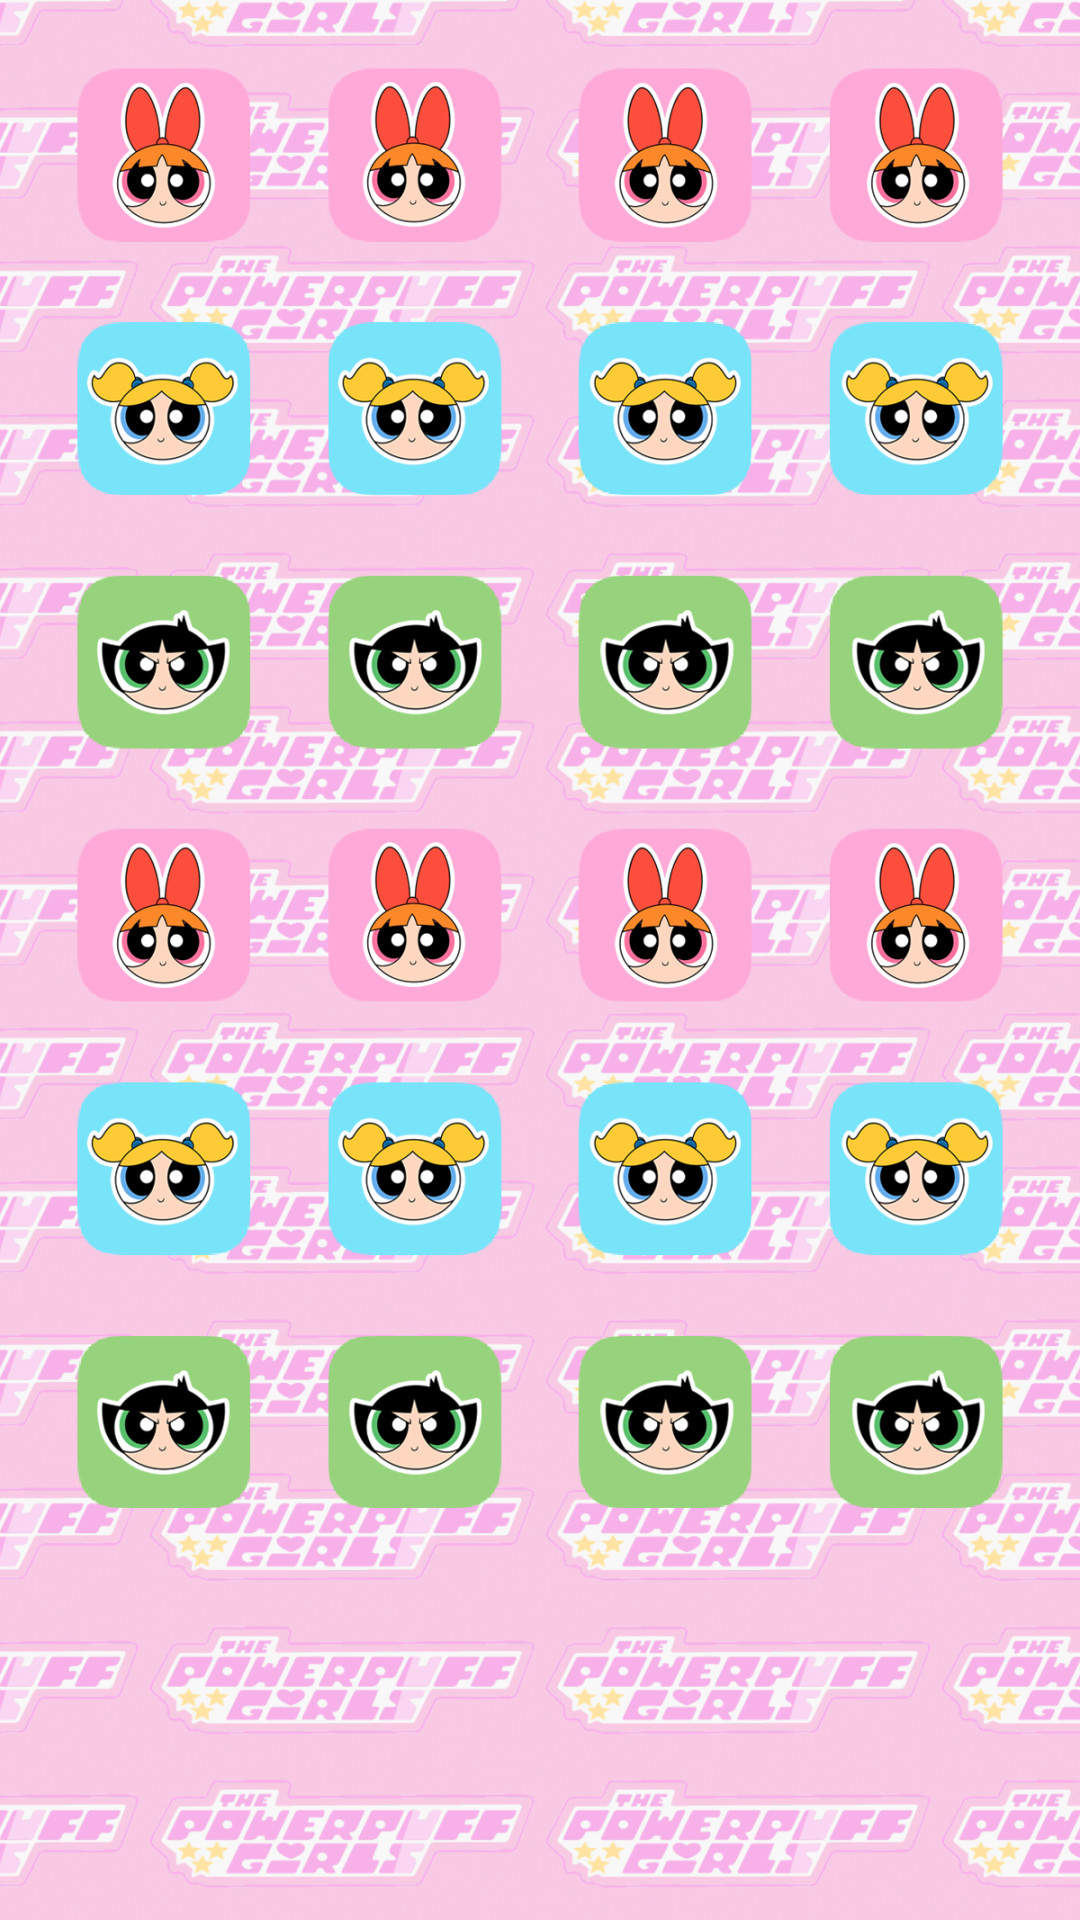 1080x1920 ppg powerpuff girls reboot 2016 lockscreens lockscreen aesthetic background  backgrounds iphone wallpaper iphone wallpapers cool hot